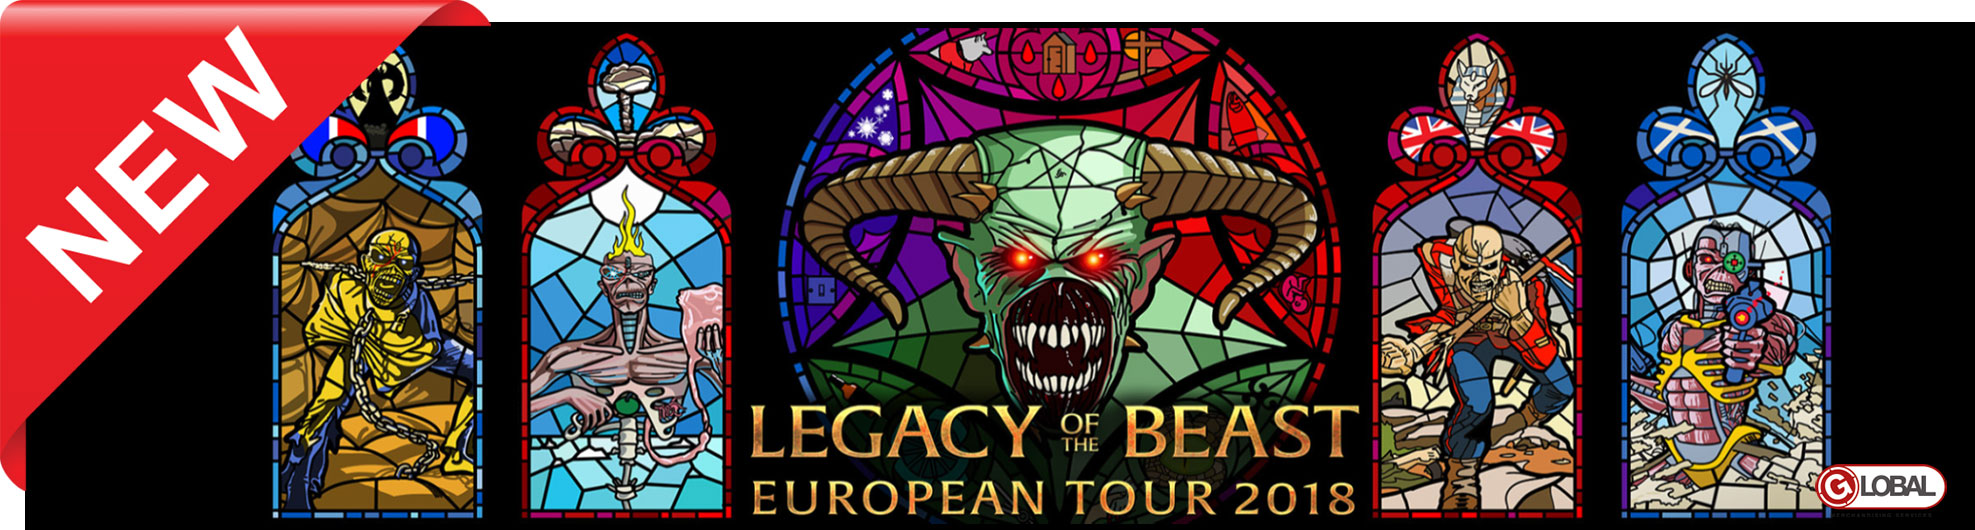 Tričká | Iron Maiden Legacy Of The Beast Tour 2018